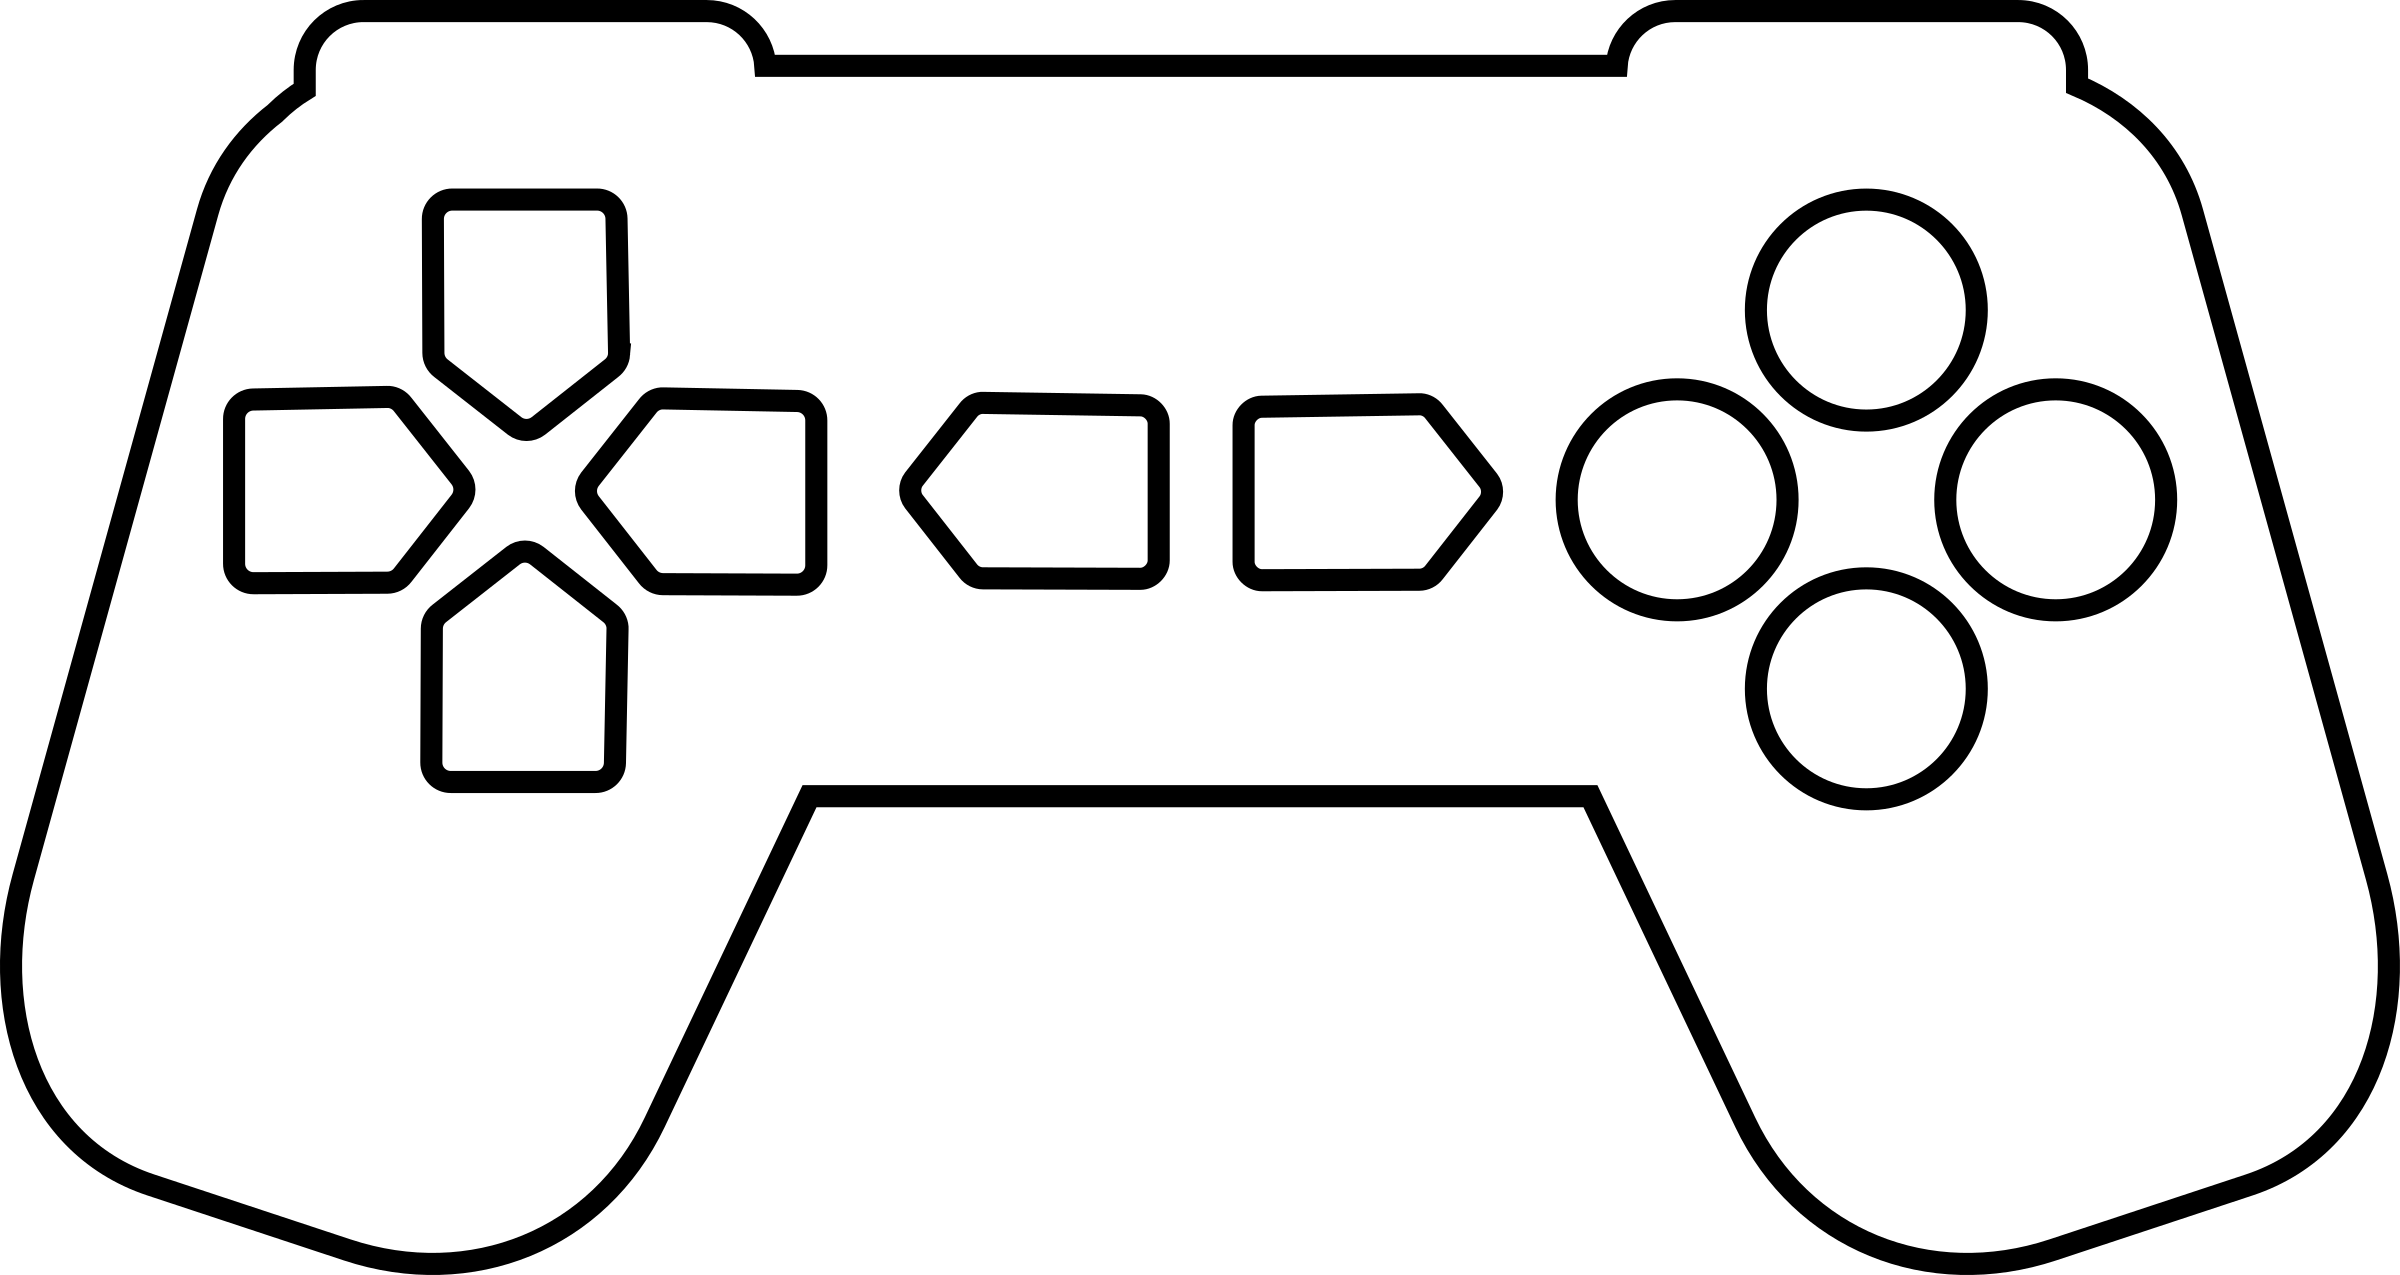 download Controller outline big image. Video game clipart black and white